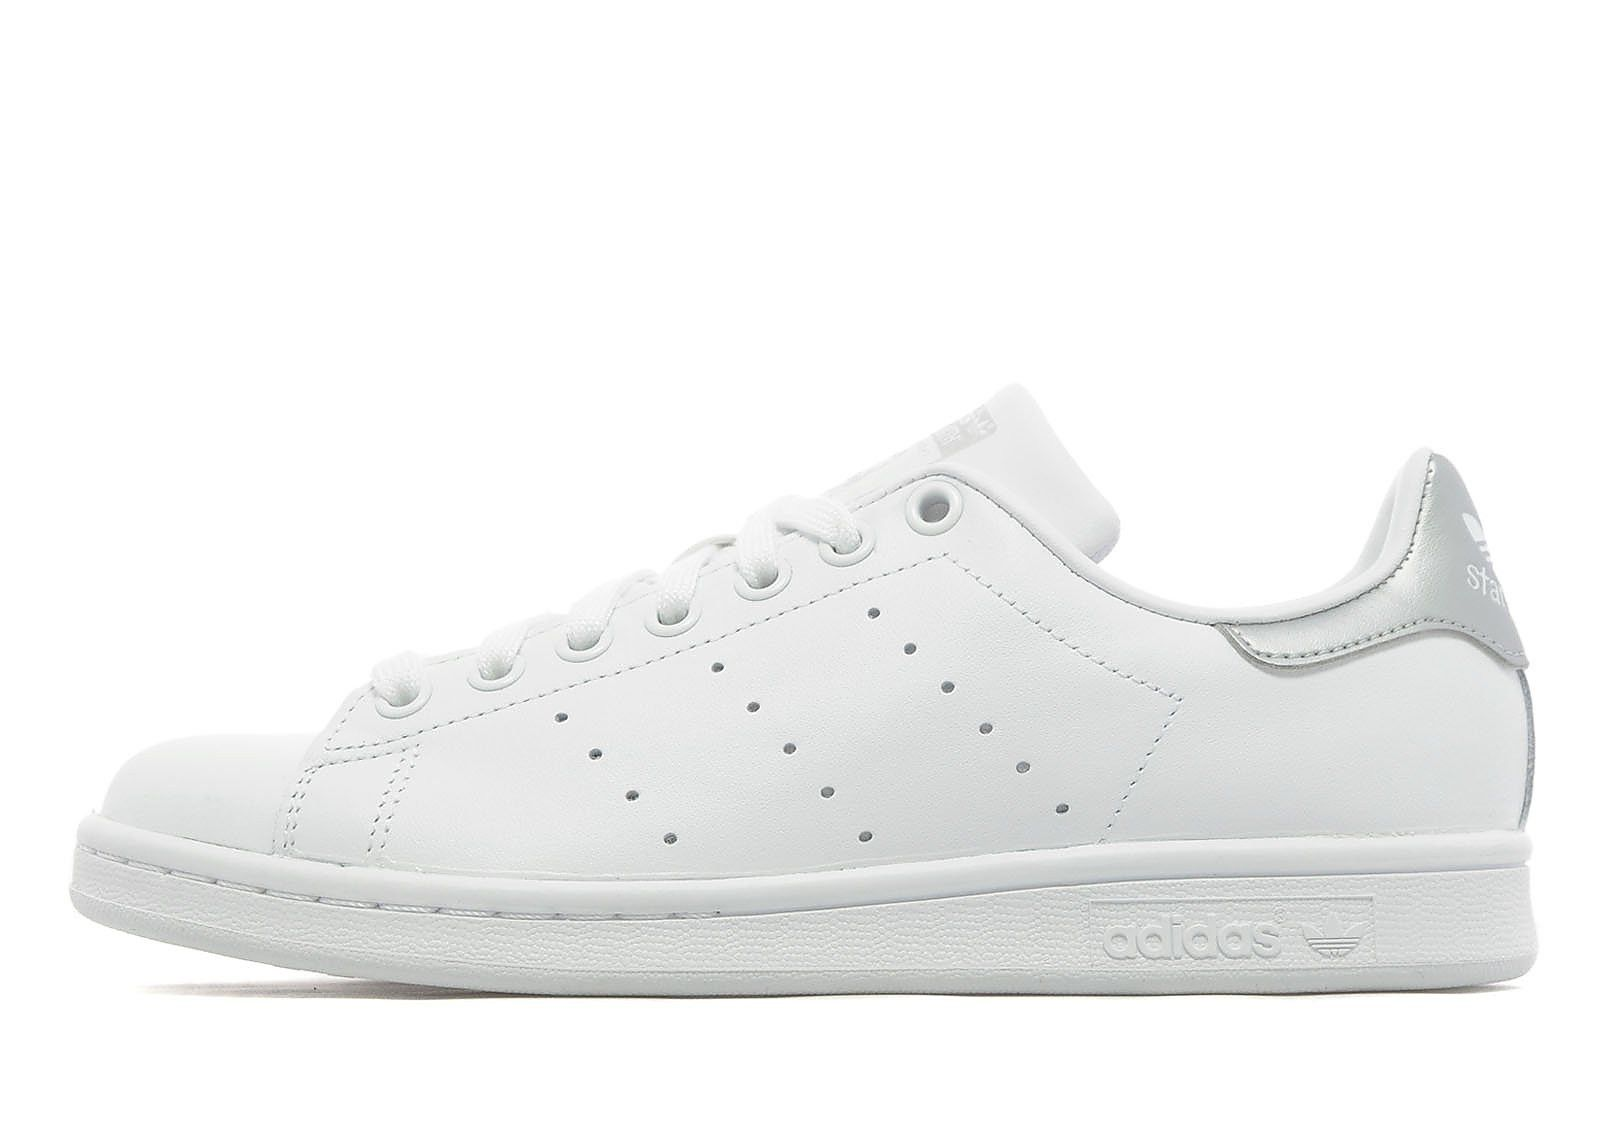 7d8df0e6d40b02 adidas Originals Stan Smith Women s - White Silver - Womens